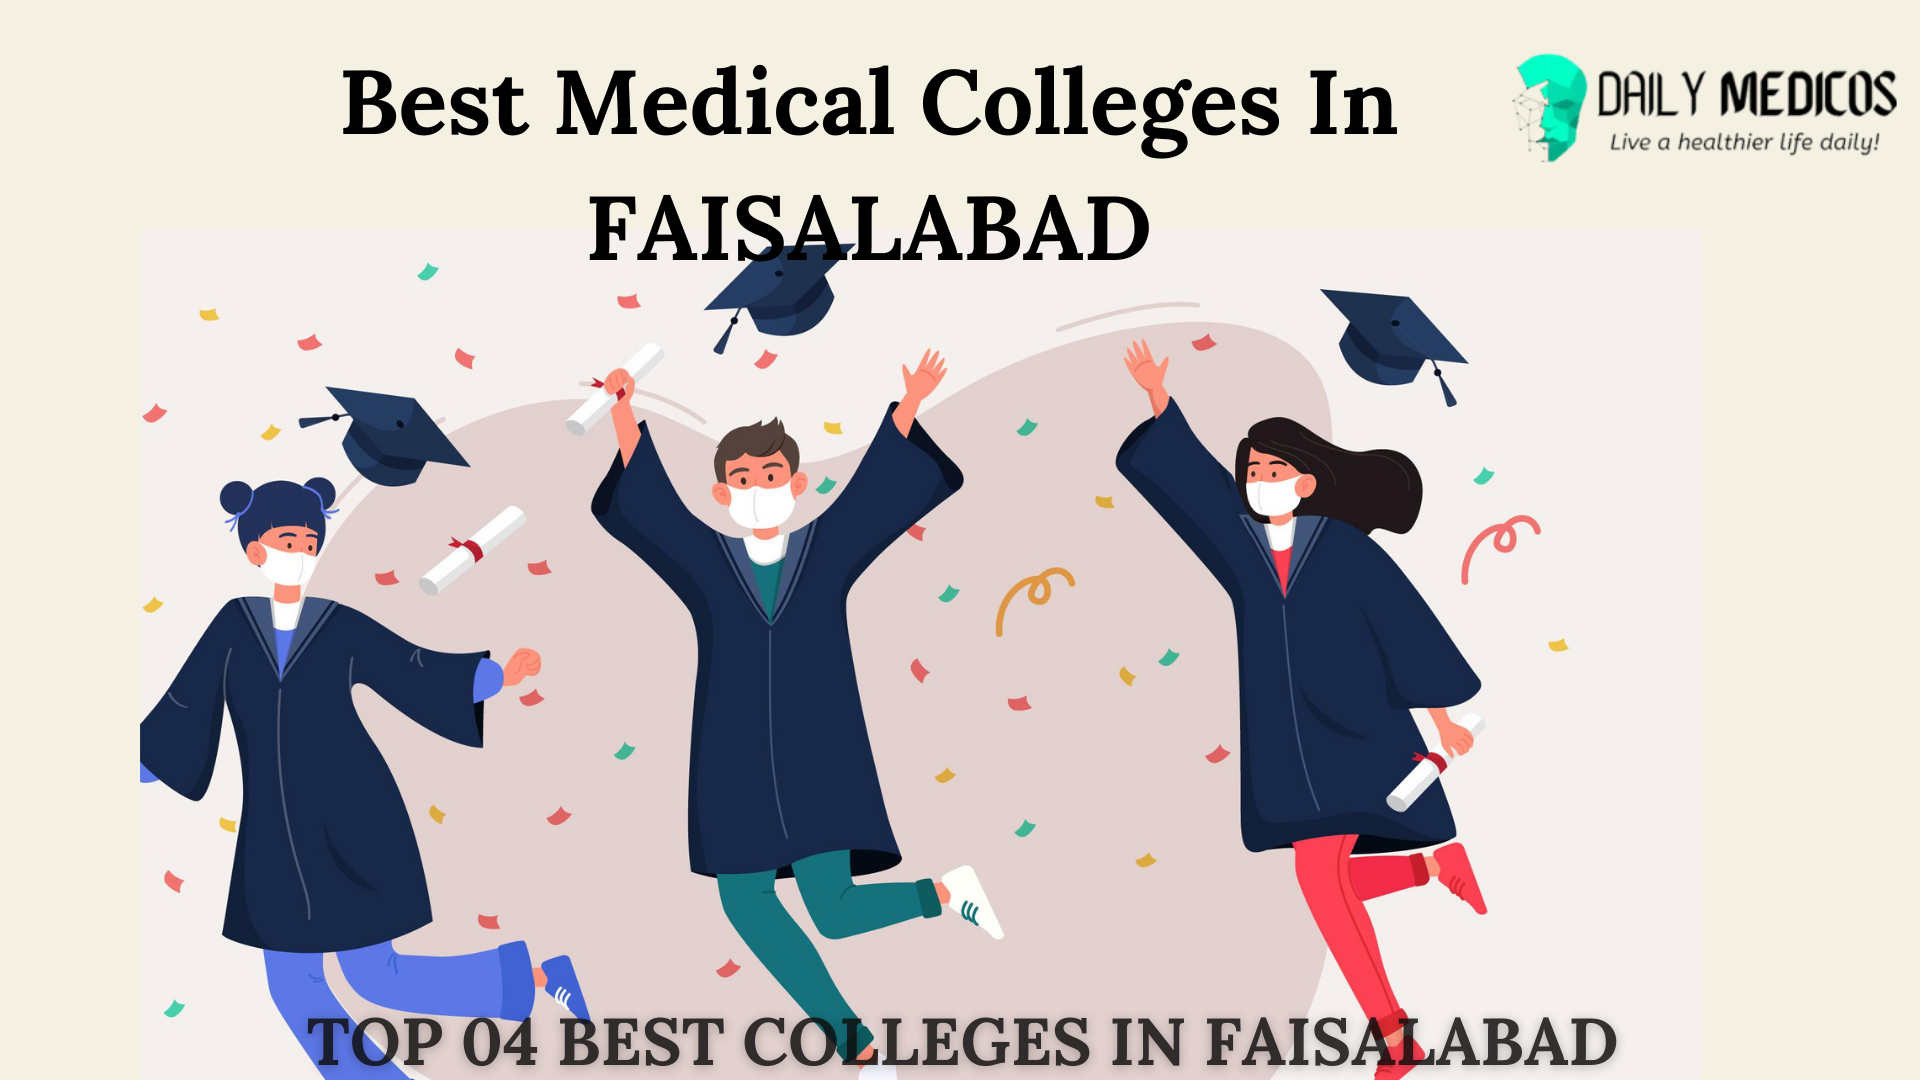 03 Best Medical Colleges In Faisalabad [Detailed Guide] 1 - Daily Medicos